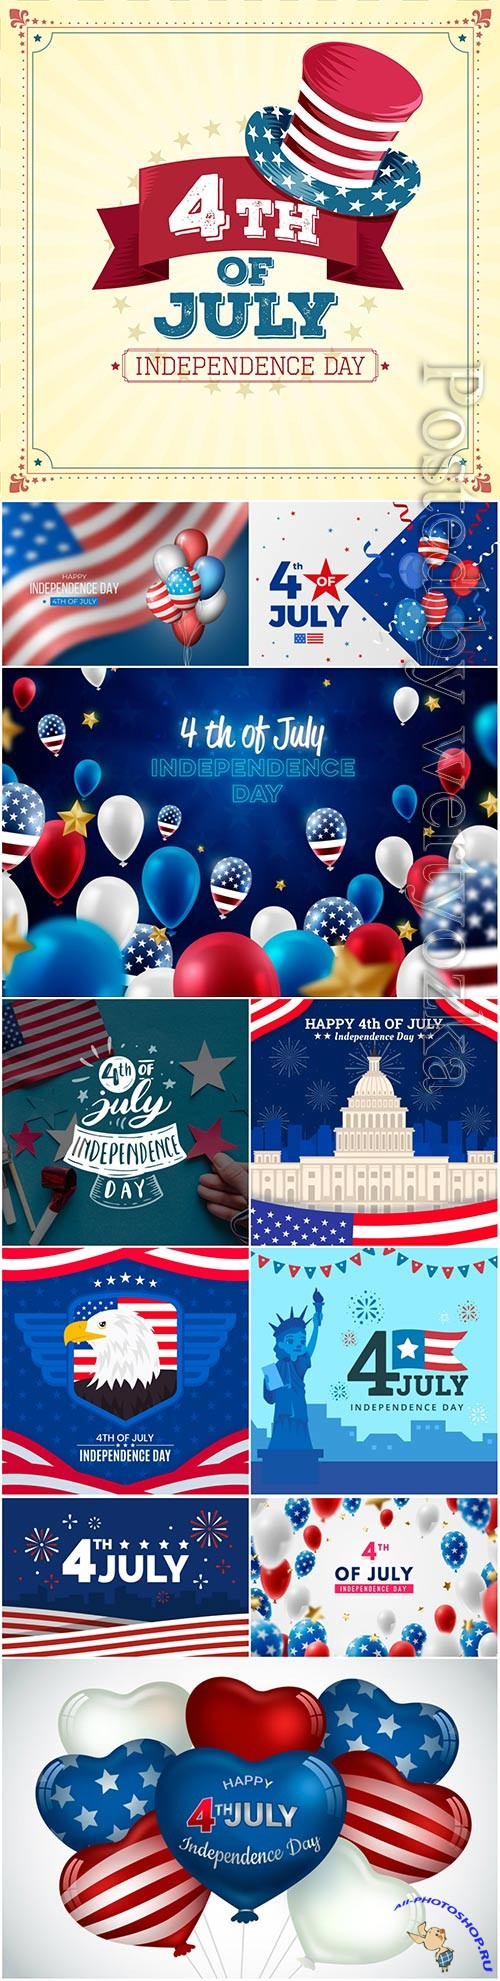 Realistic usa independence day background vector set